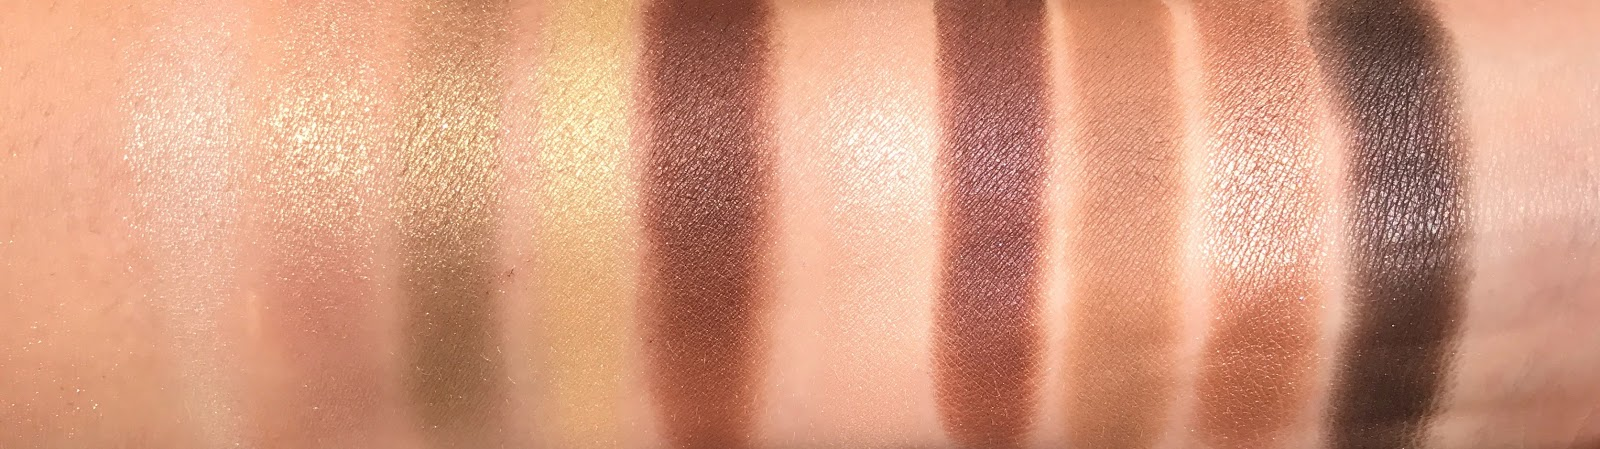 dior 5 couleurs eyeshadow palette quint swatches review expose feel